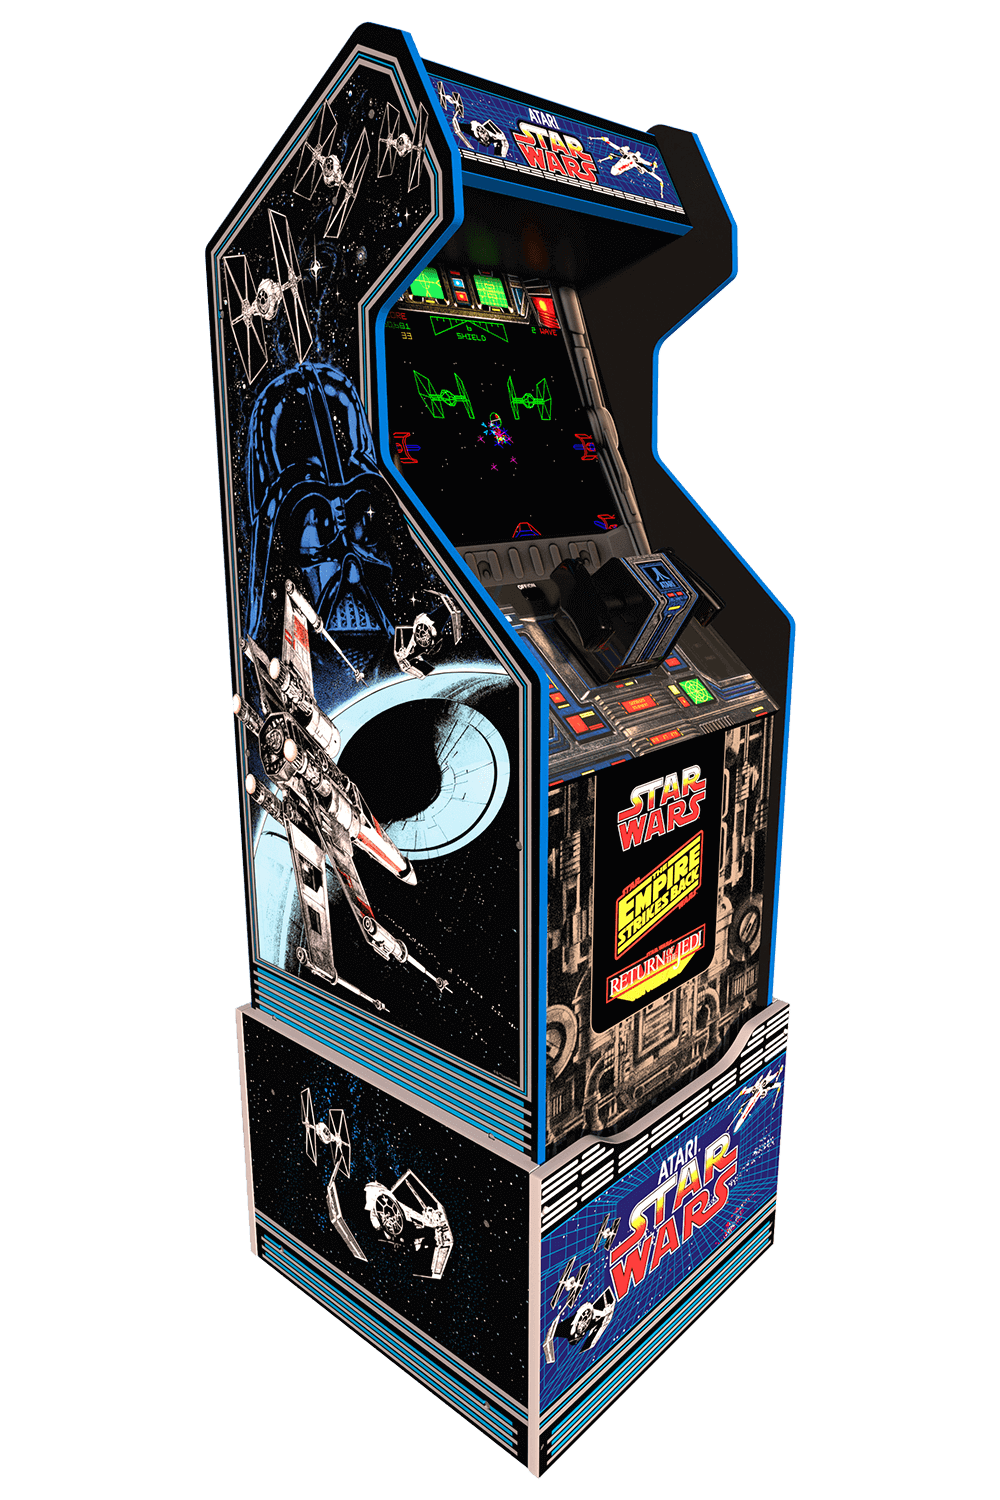 Space Invaders Arcade Cabinet - Arcade1Up